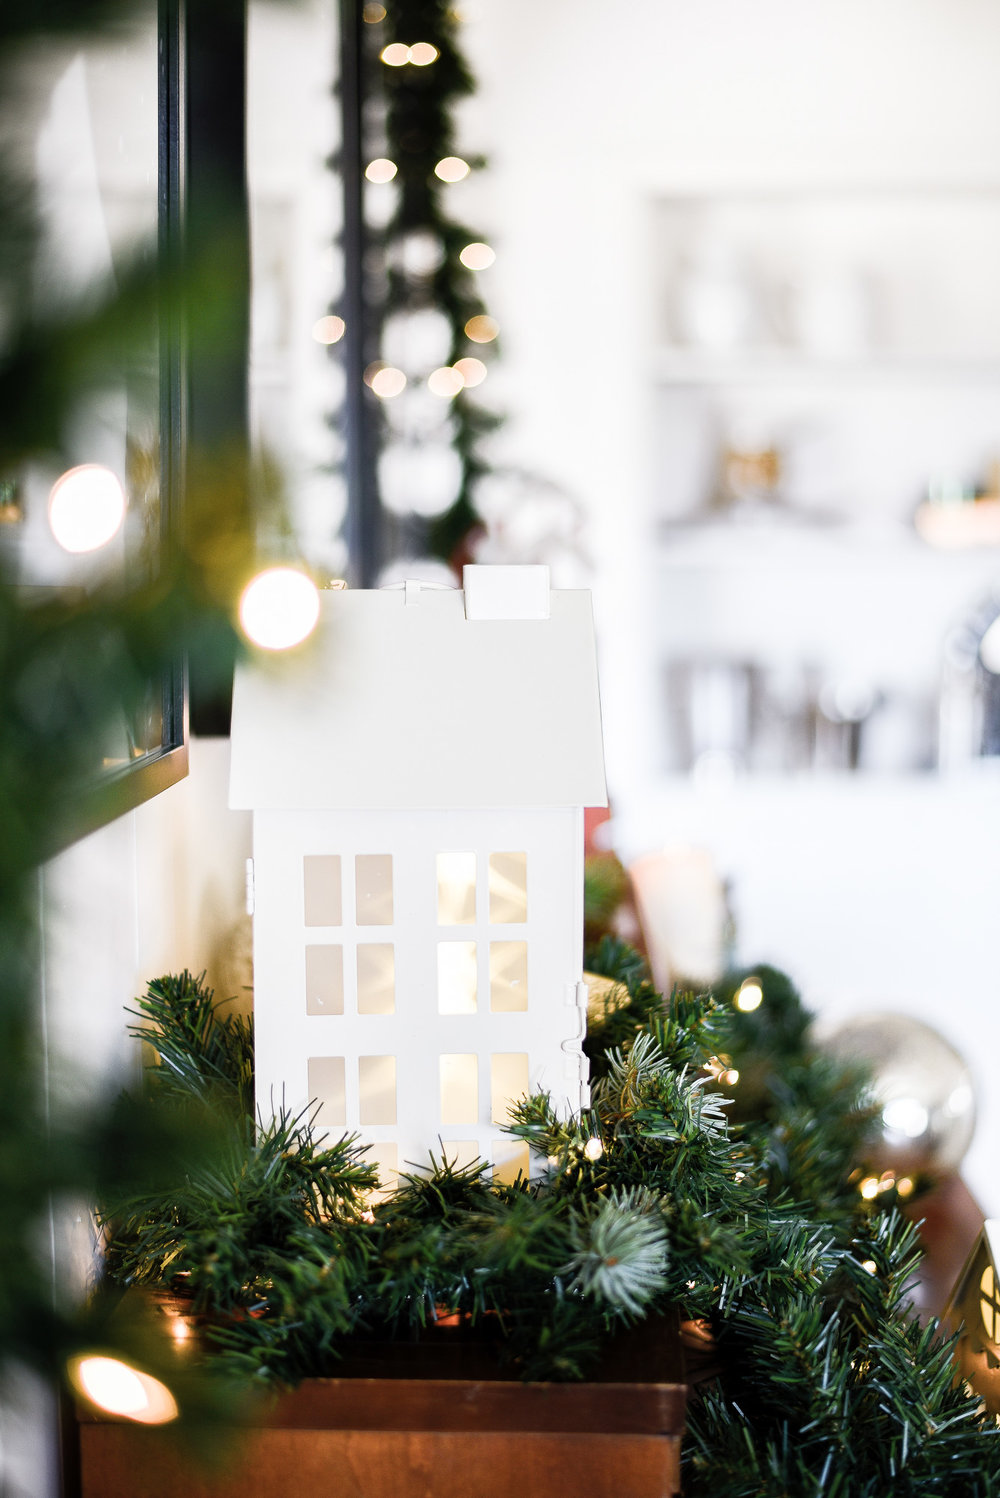 A tiny holiday village on top of piano | boxwoodavenue.com